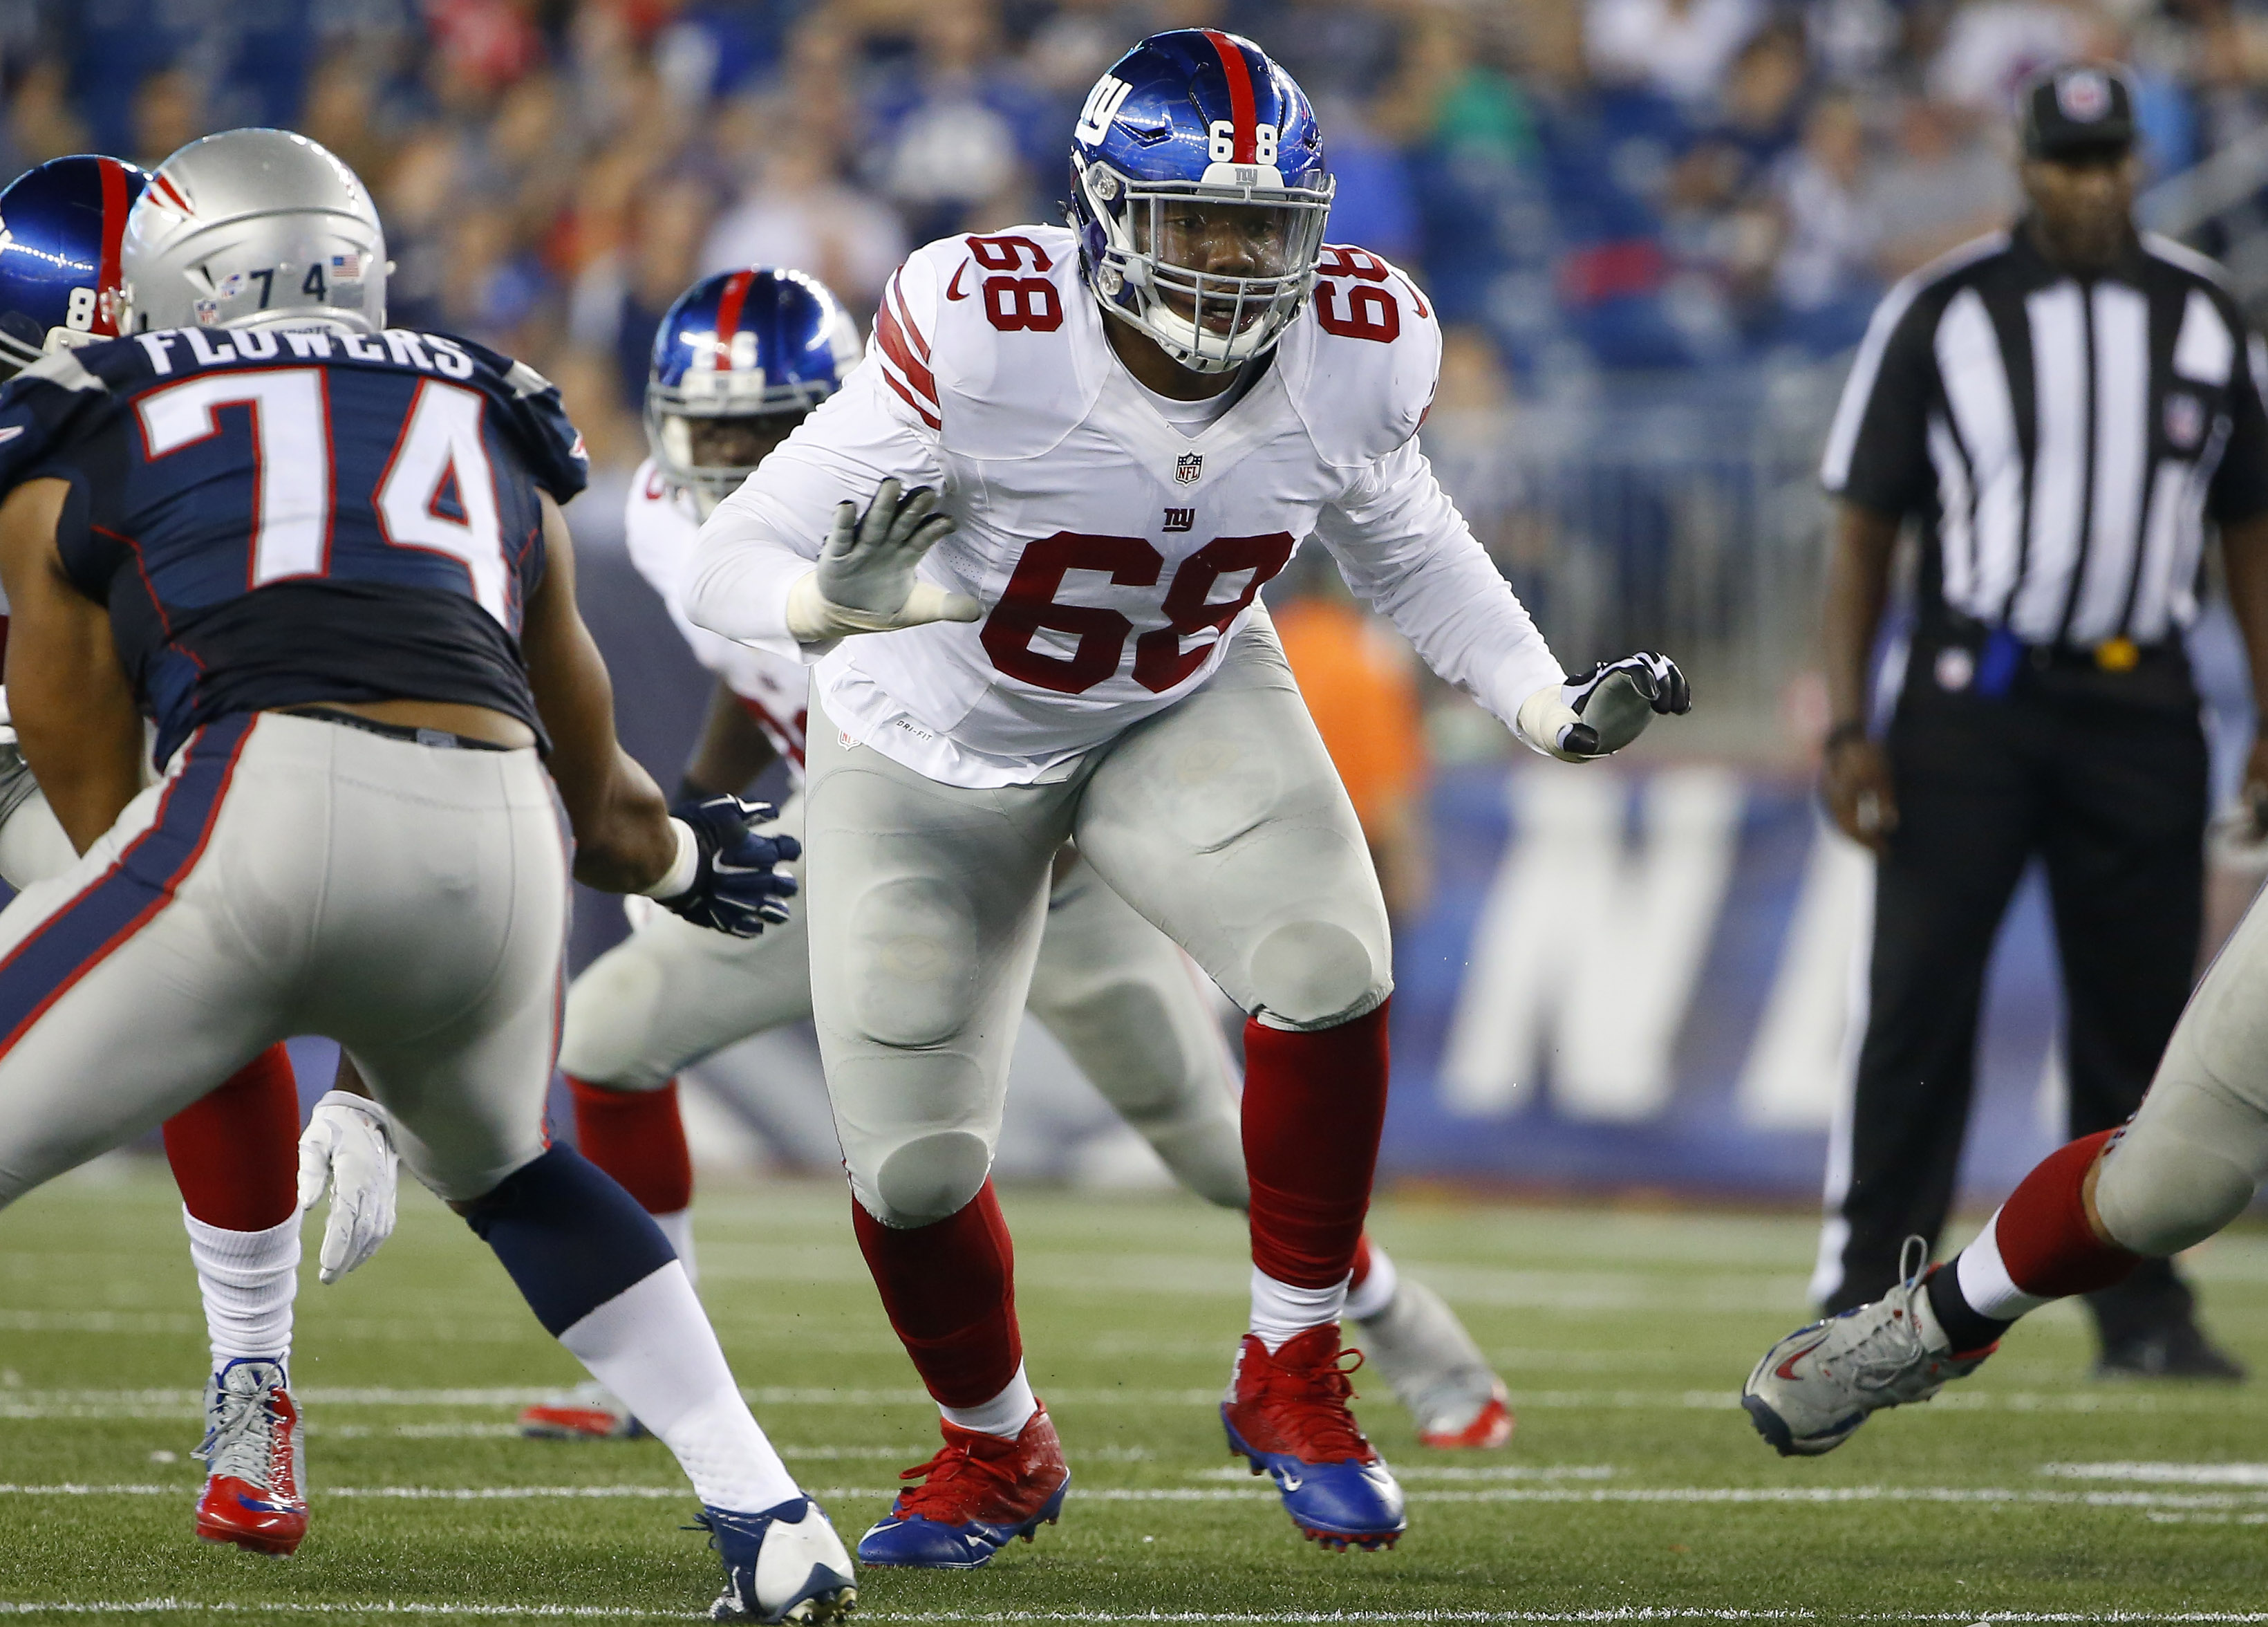 FILE - This Sept. 3, 2015 photo shows New York Giants offensive guard Bobby Hart in the second half of an NFL football game against the New England Patriots in Foxborough, Mass. Hart is somewhat of the unknown on the New York Giants offensive line. New co